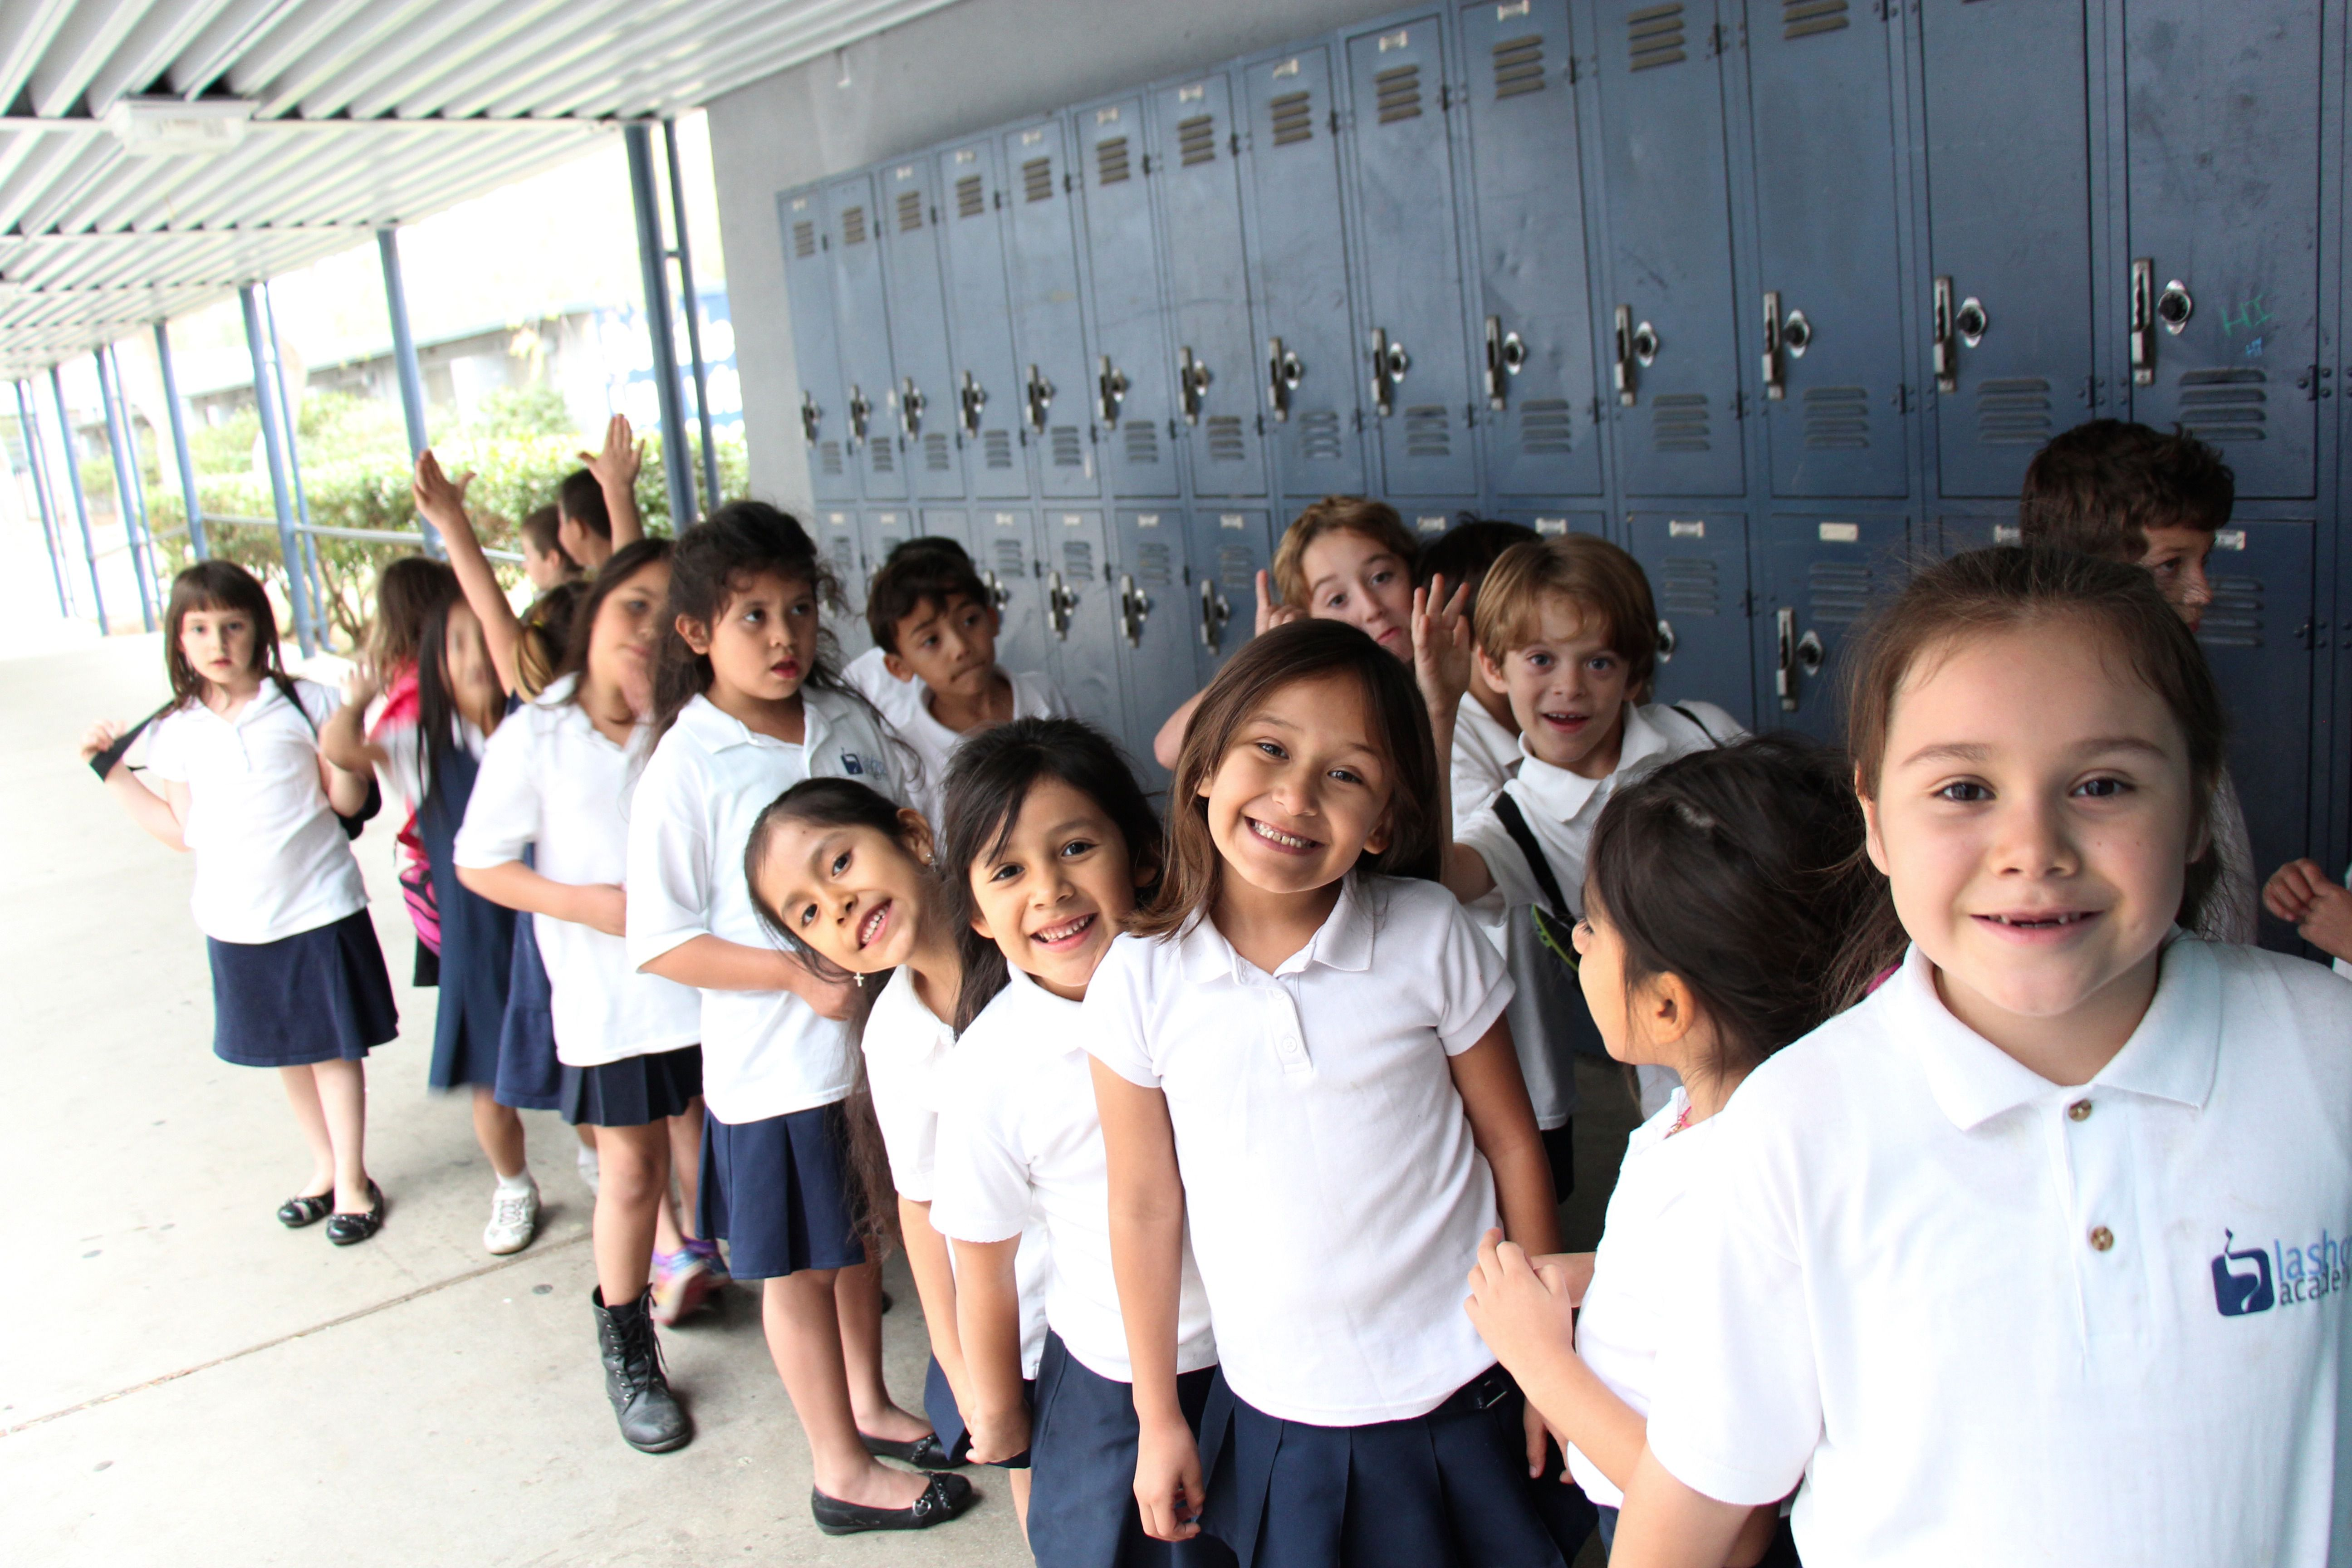 Fresh Faces: Students at the young Lashon Academy, which is entering its third year as a dual-language Hebrew charter school in Los Angeles, California.